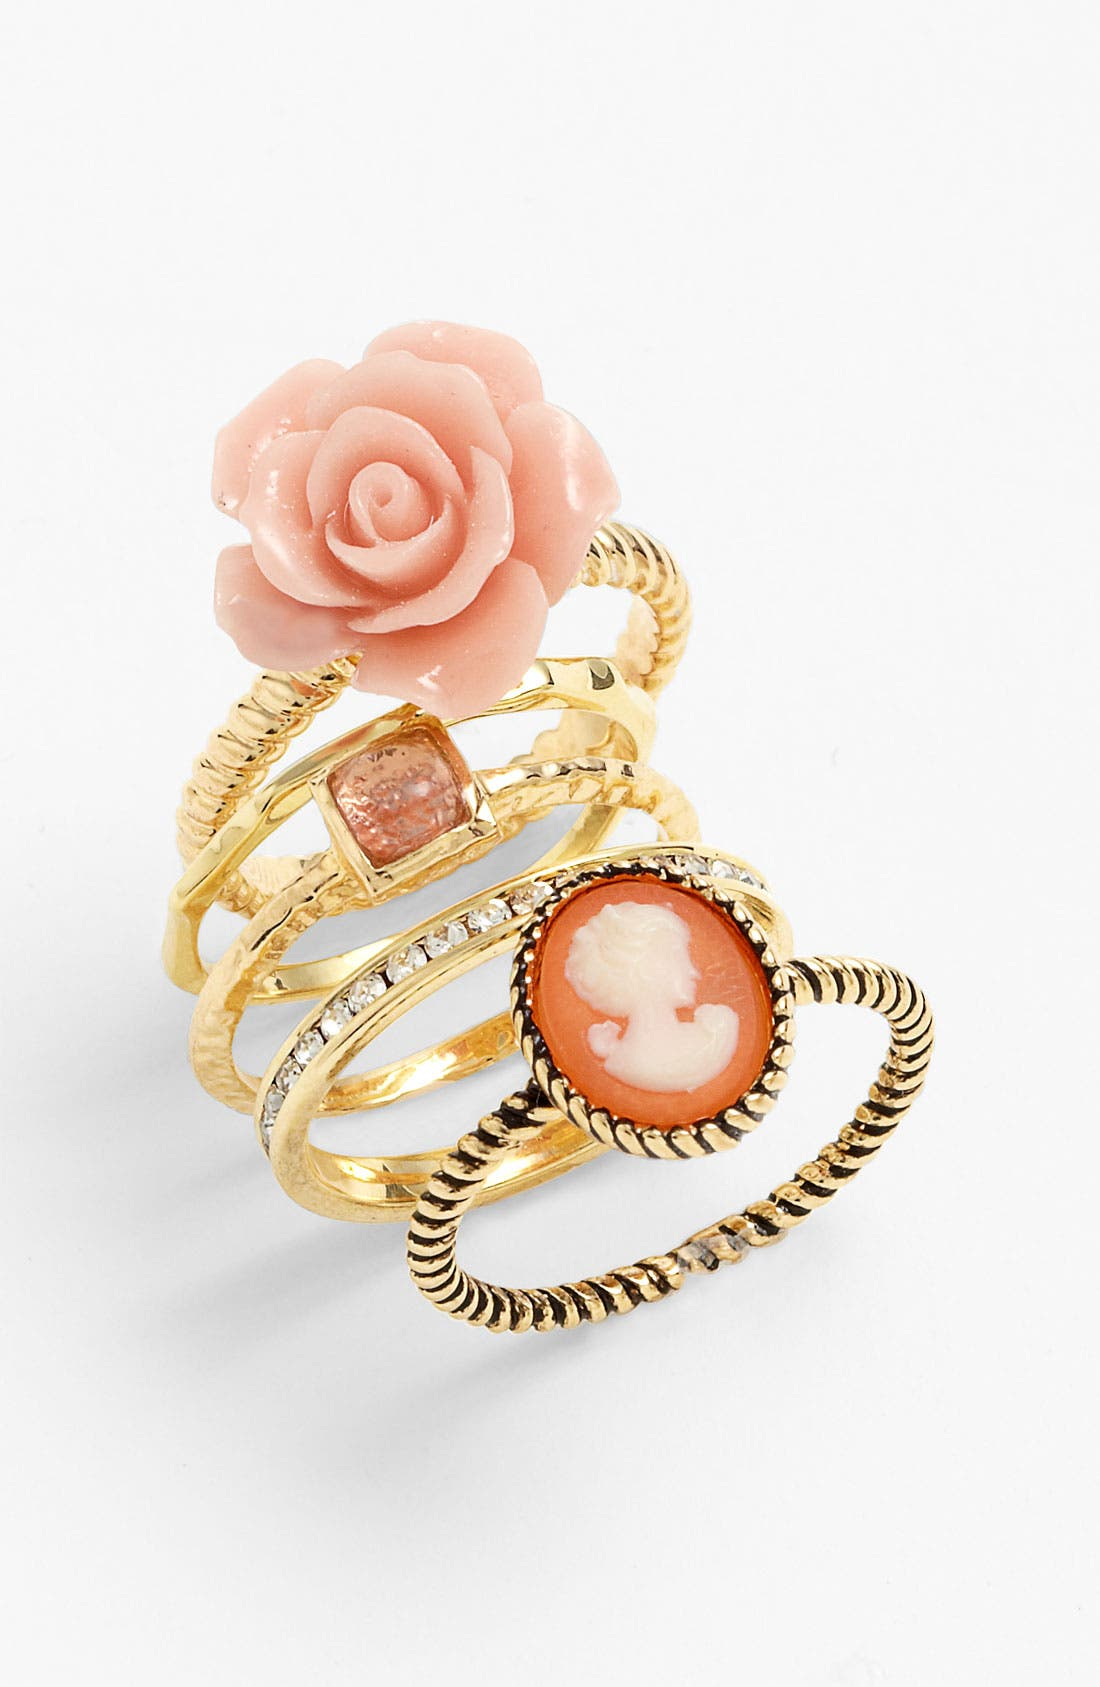 Main Image - Ariella Collection Floral & Cameo Stack Rings (Set of 5) (Nordstrom Exclusive)